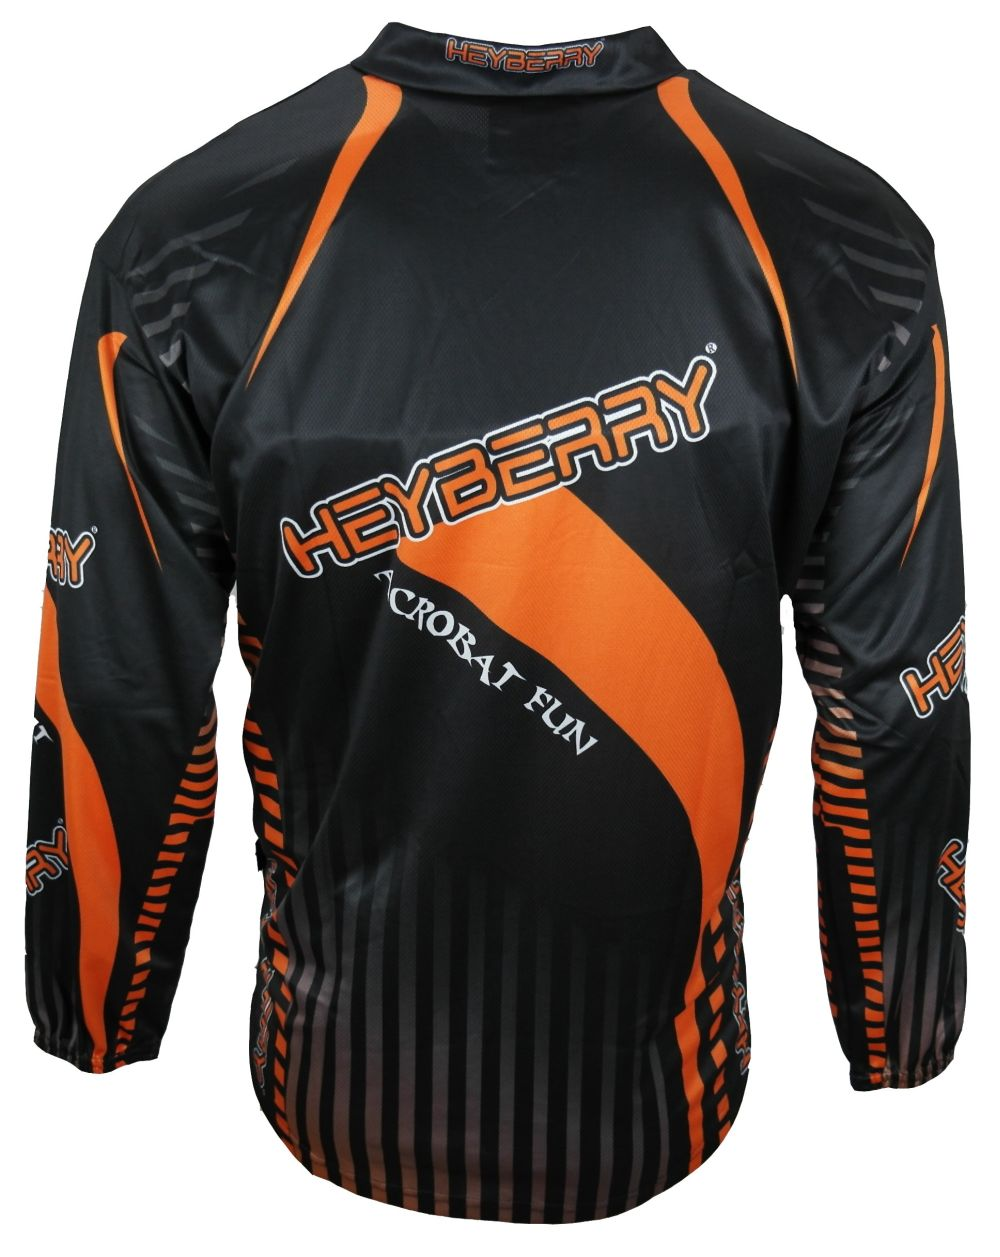 Heyberry Motocross MX Shirt Jersey Trikot schwarz orange Größe M L XL XXL